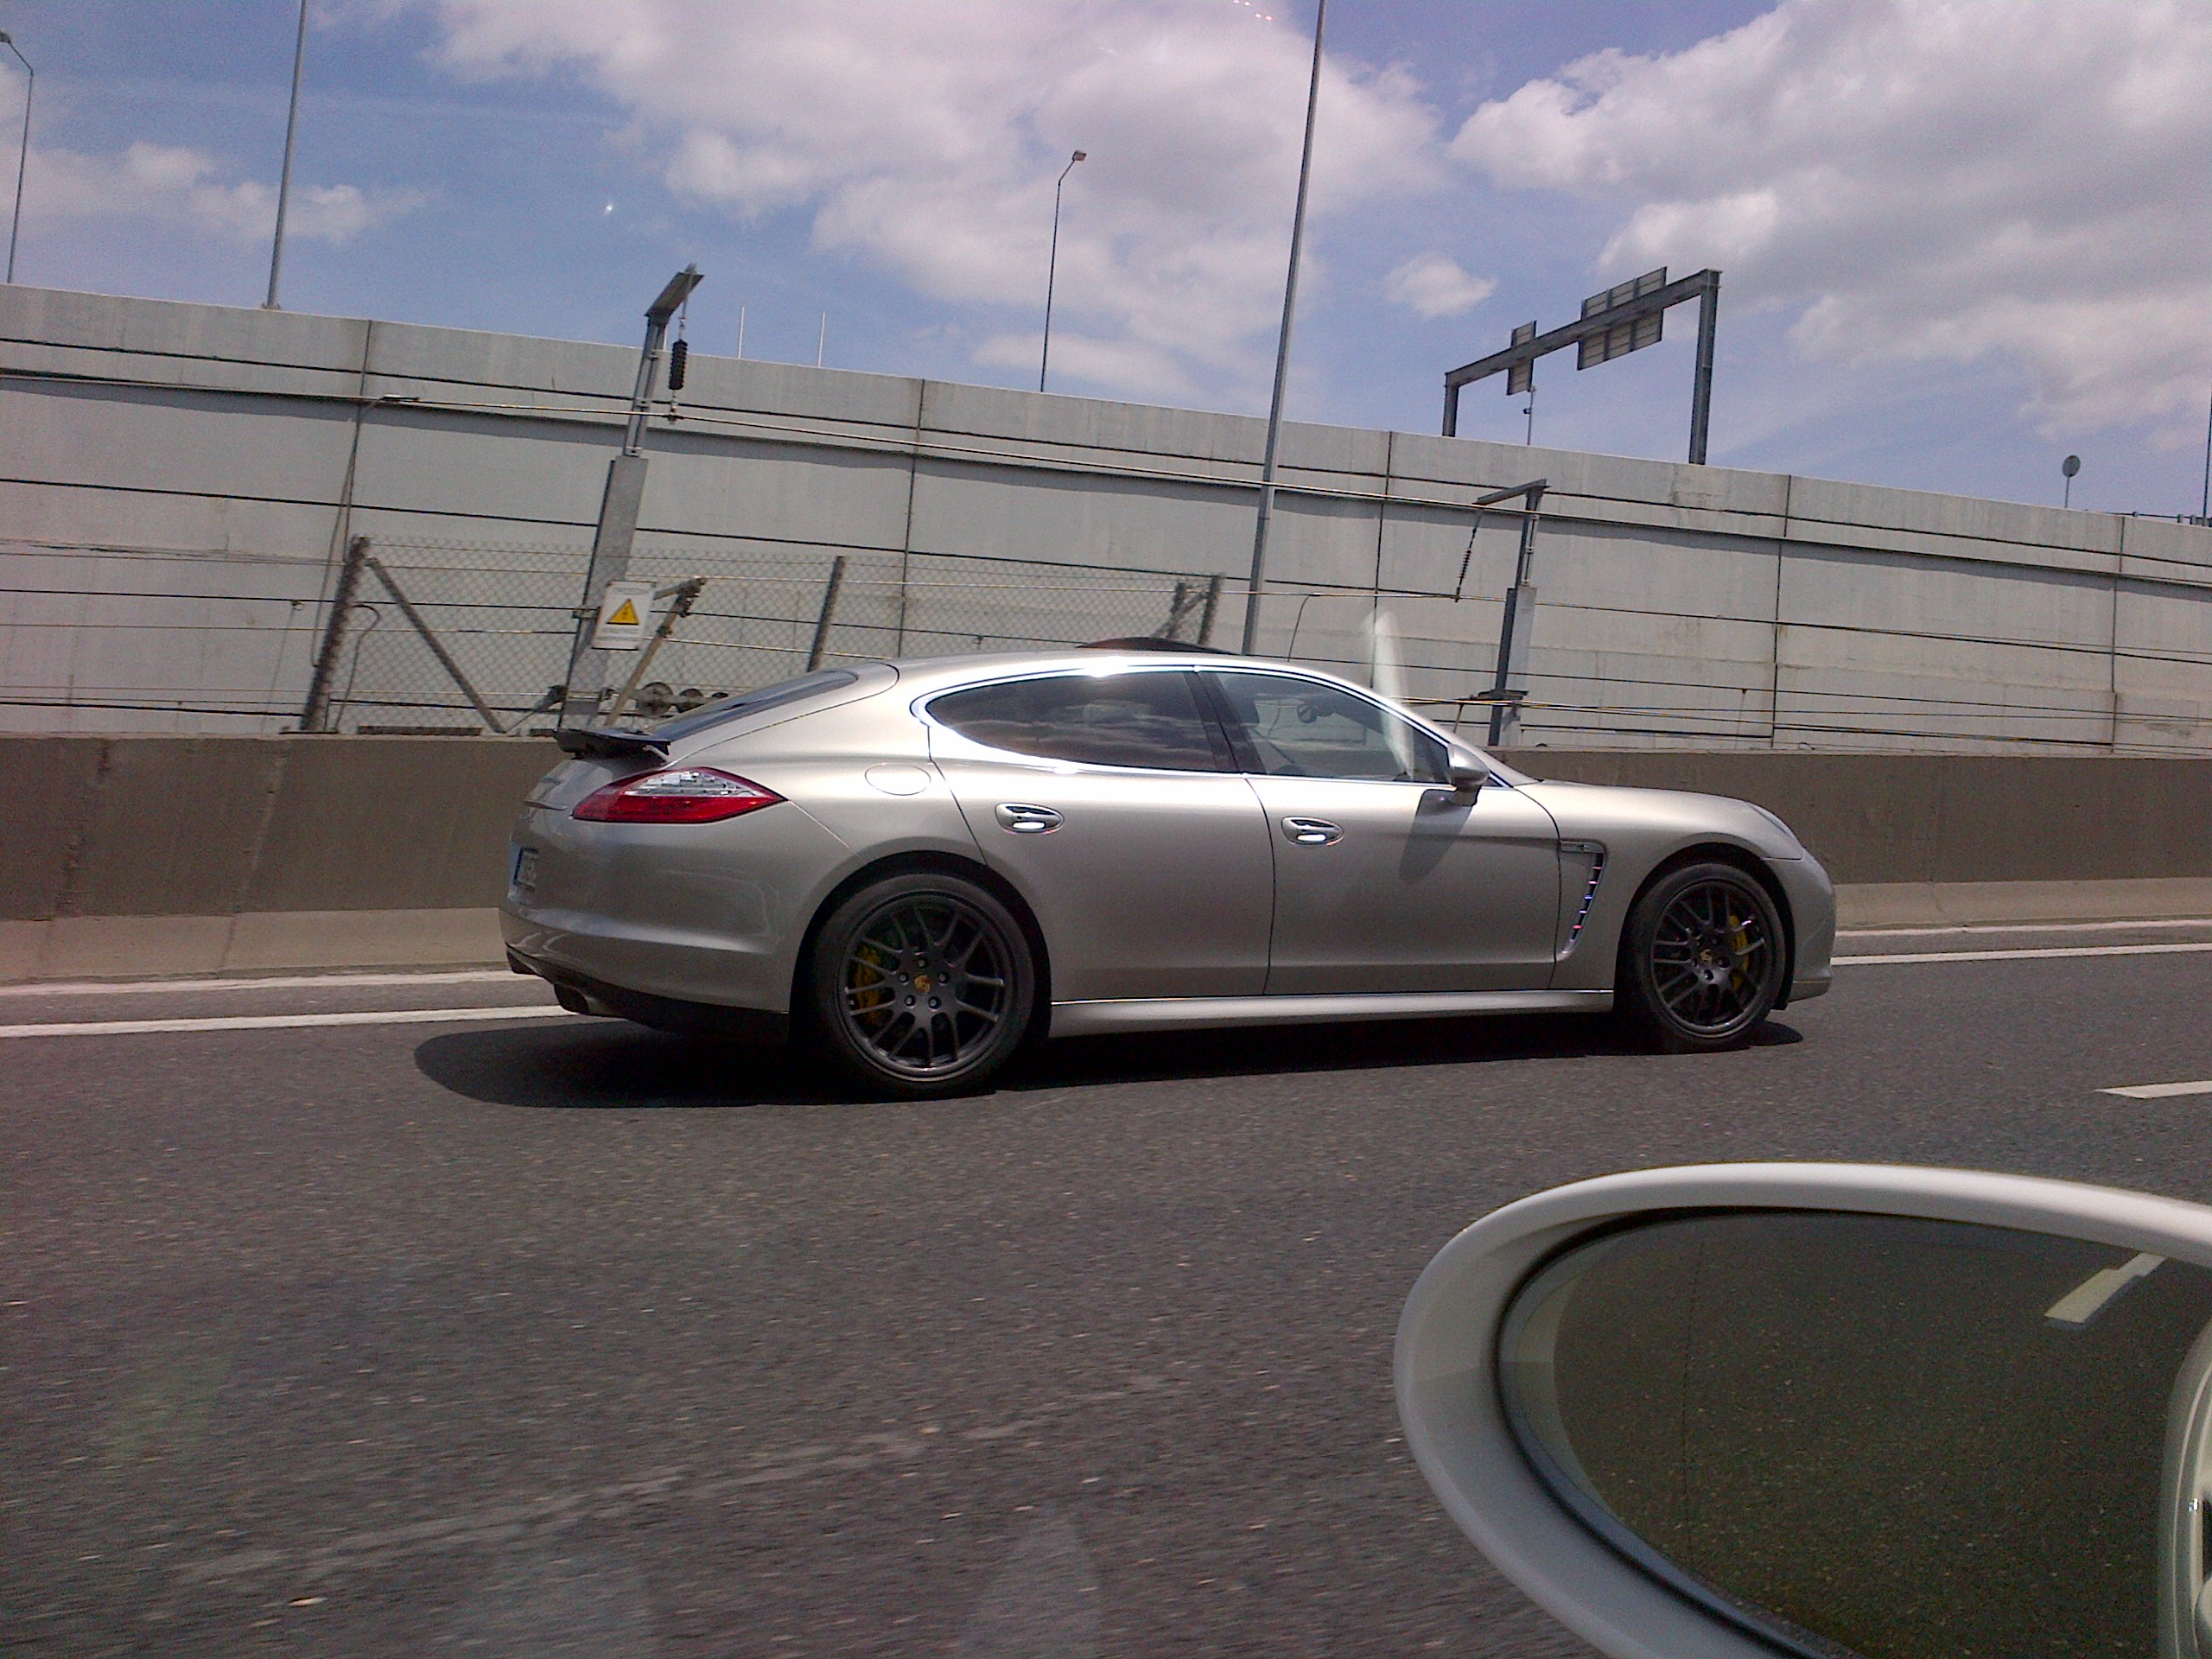 michael-gotsis-panamera-turbo